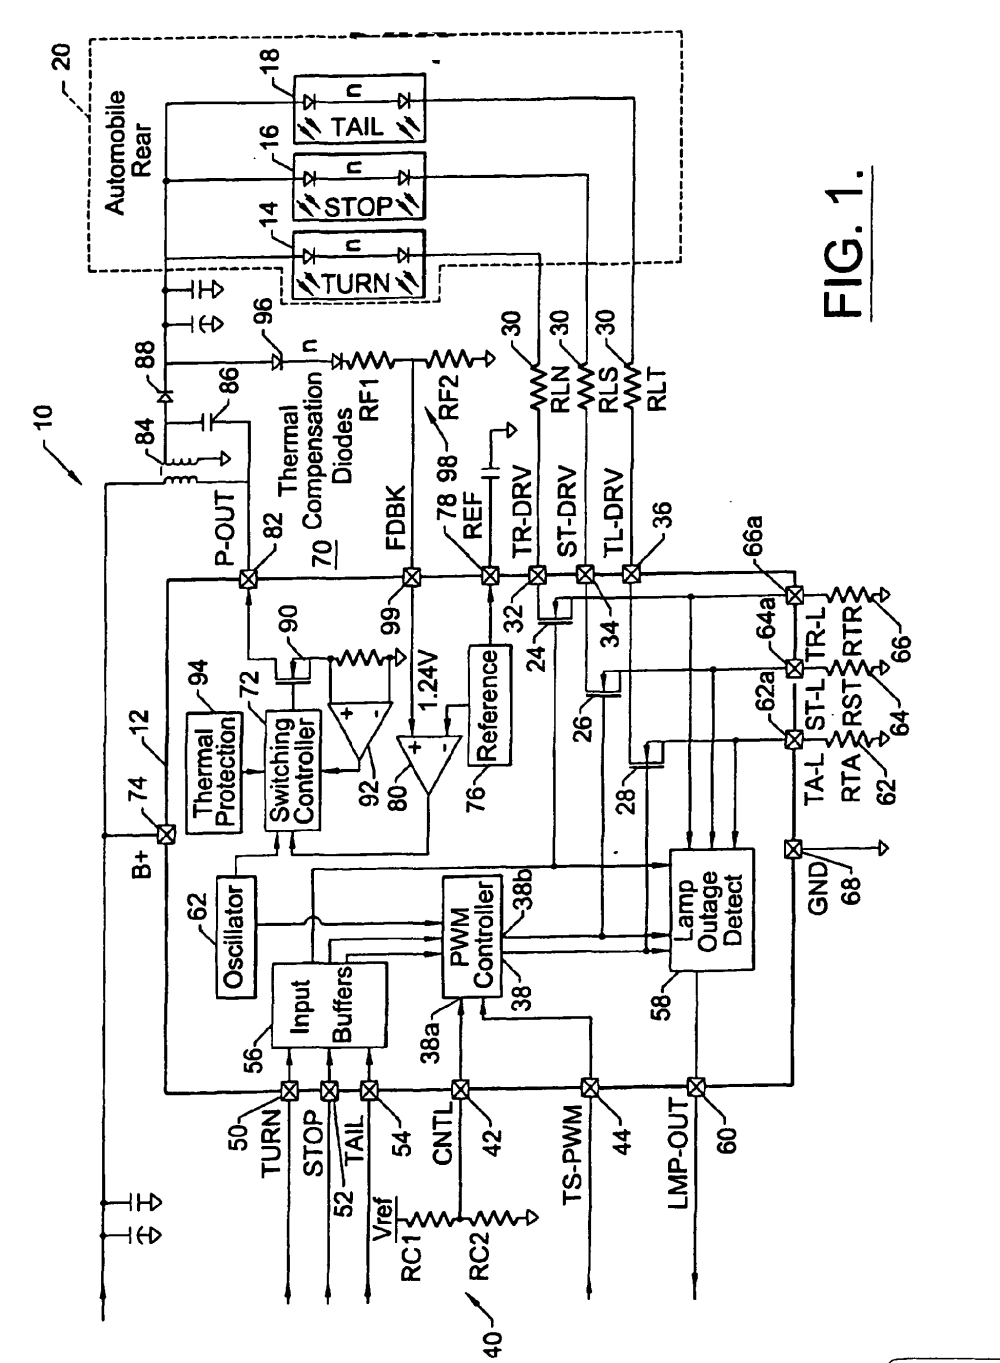 medium resolution of patent us7894934 remote conveyor belt monitoring system and method google wiring diagrams ribu1c wiring diagram for